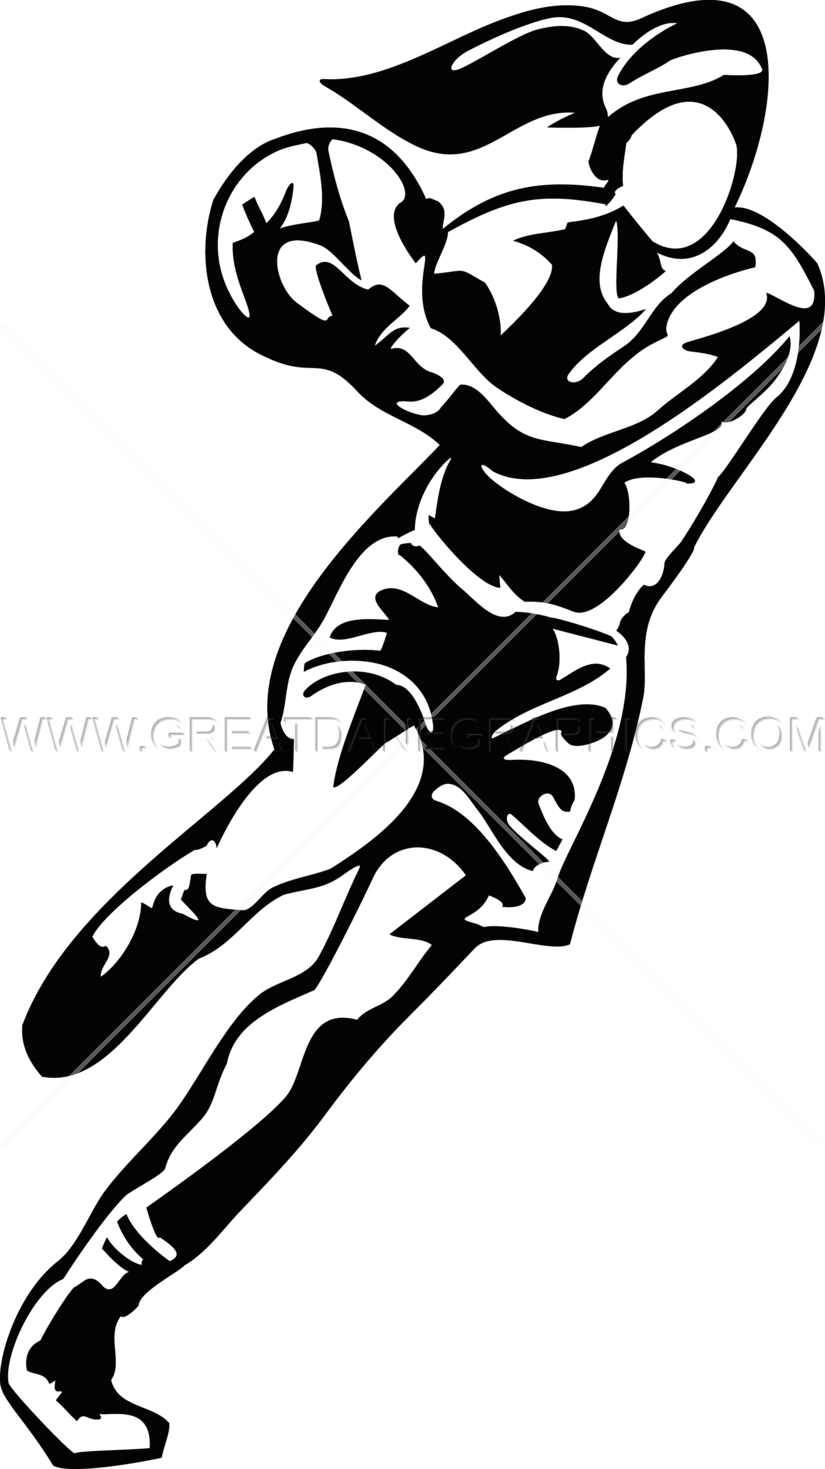 Girl basketball players clipart banner library download Female Basketball Player | Production Ready Artwork for T-Shirt Printing banner library download